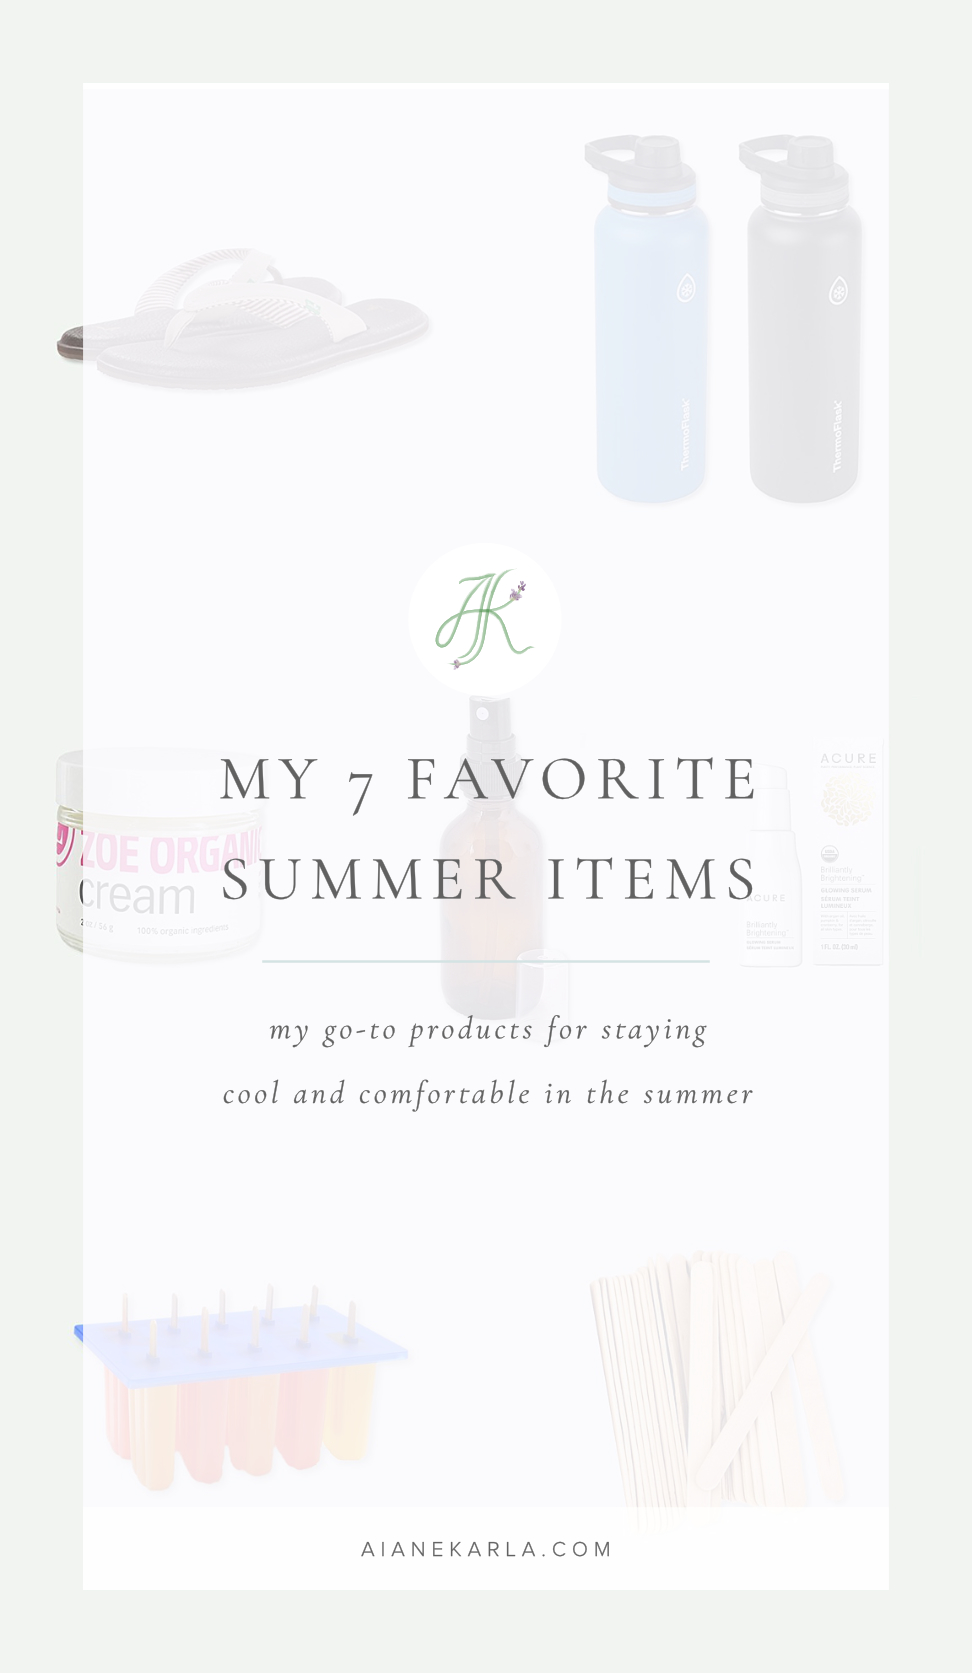 My 7 Favorite Summer Items | Aiane Karla | www.aianekarla.com